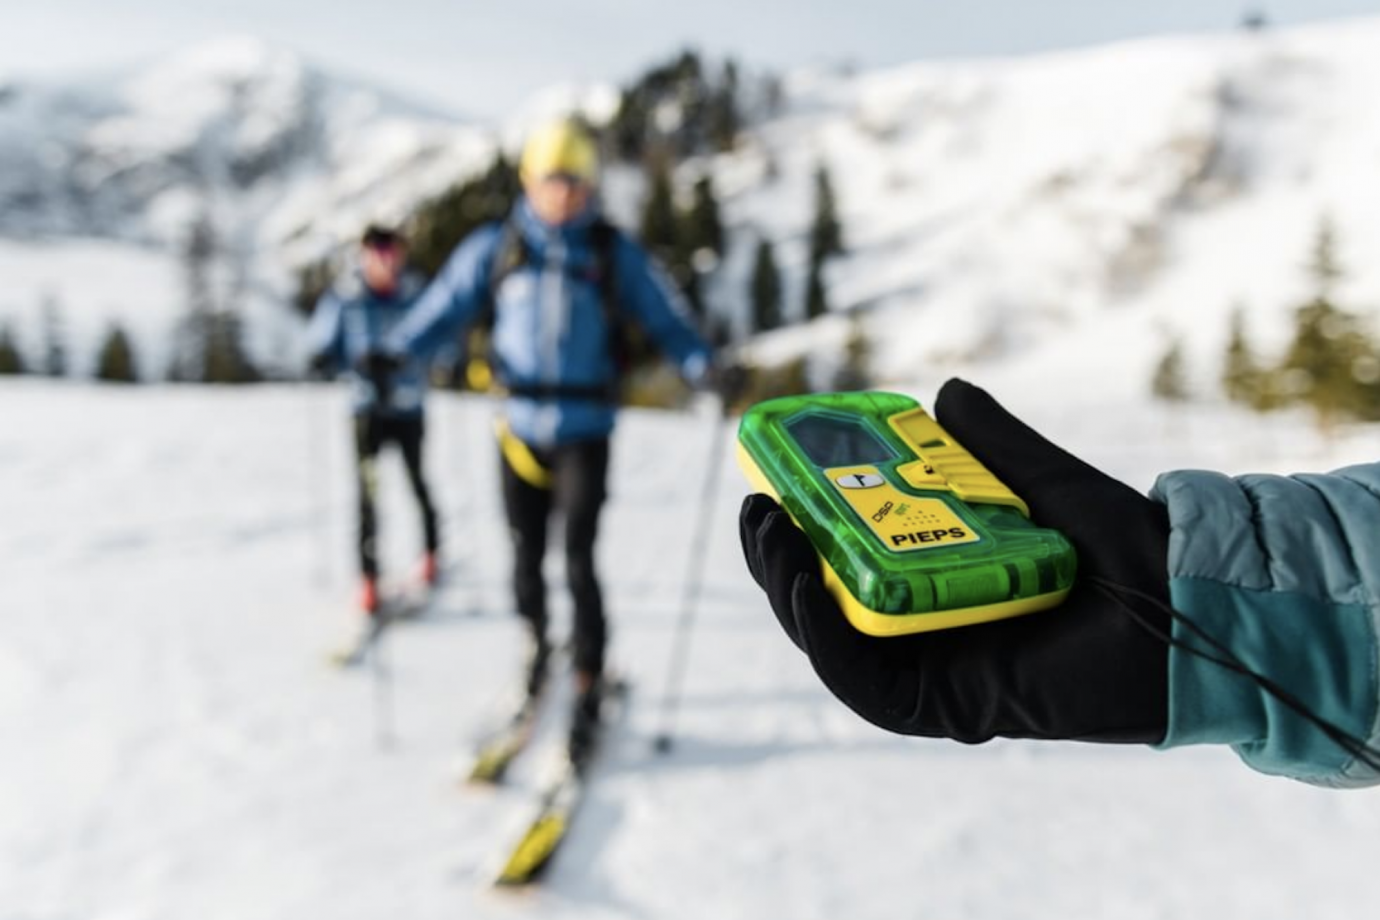 skier holding up pieps dsp pro transceiver with two other skiers in background